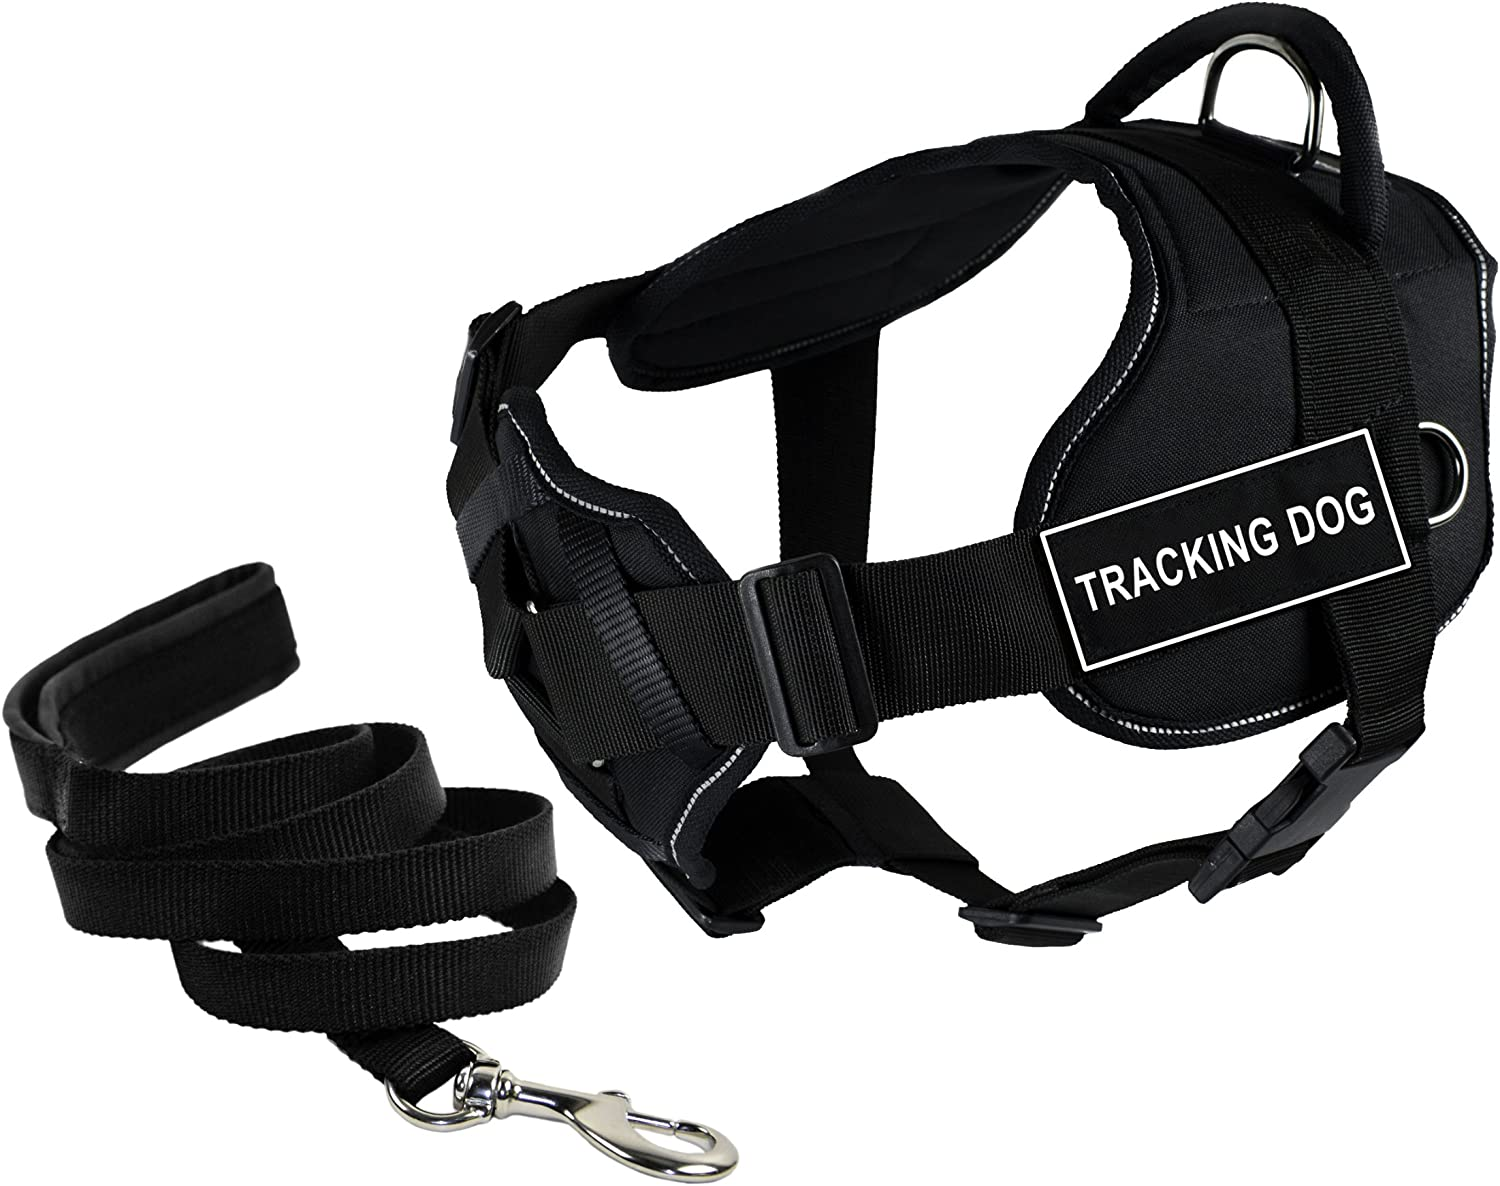 Dean & Tyler's DT Fun Chest Support TRACKING DOG Harness with Reflective Trim, Small, and 6 ft Padded Puppy Leash.